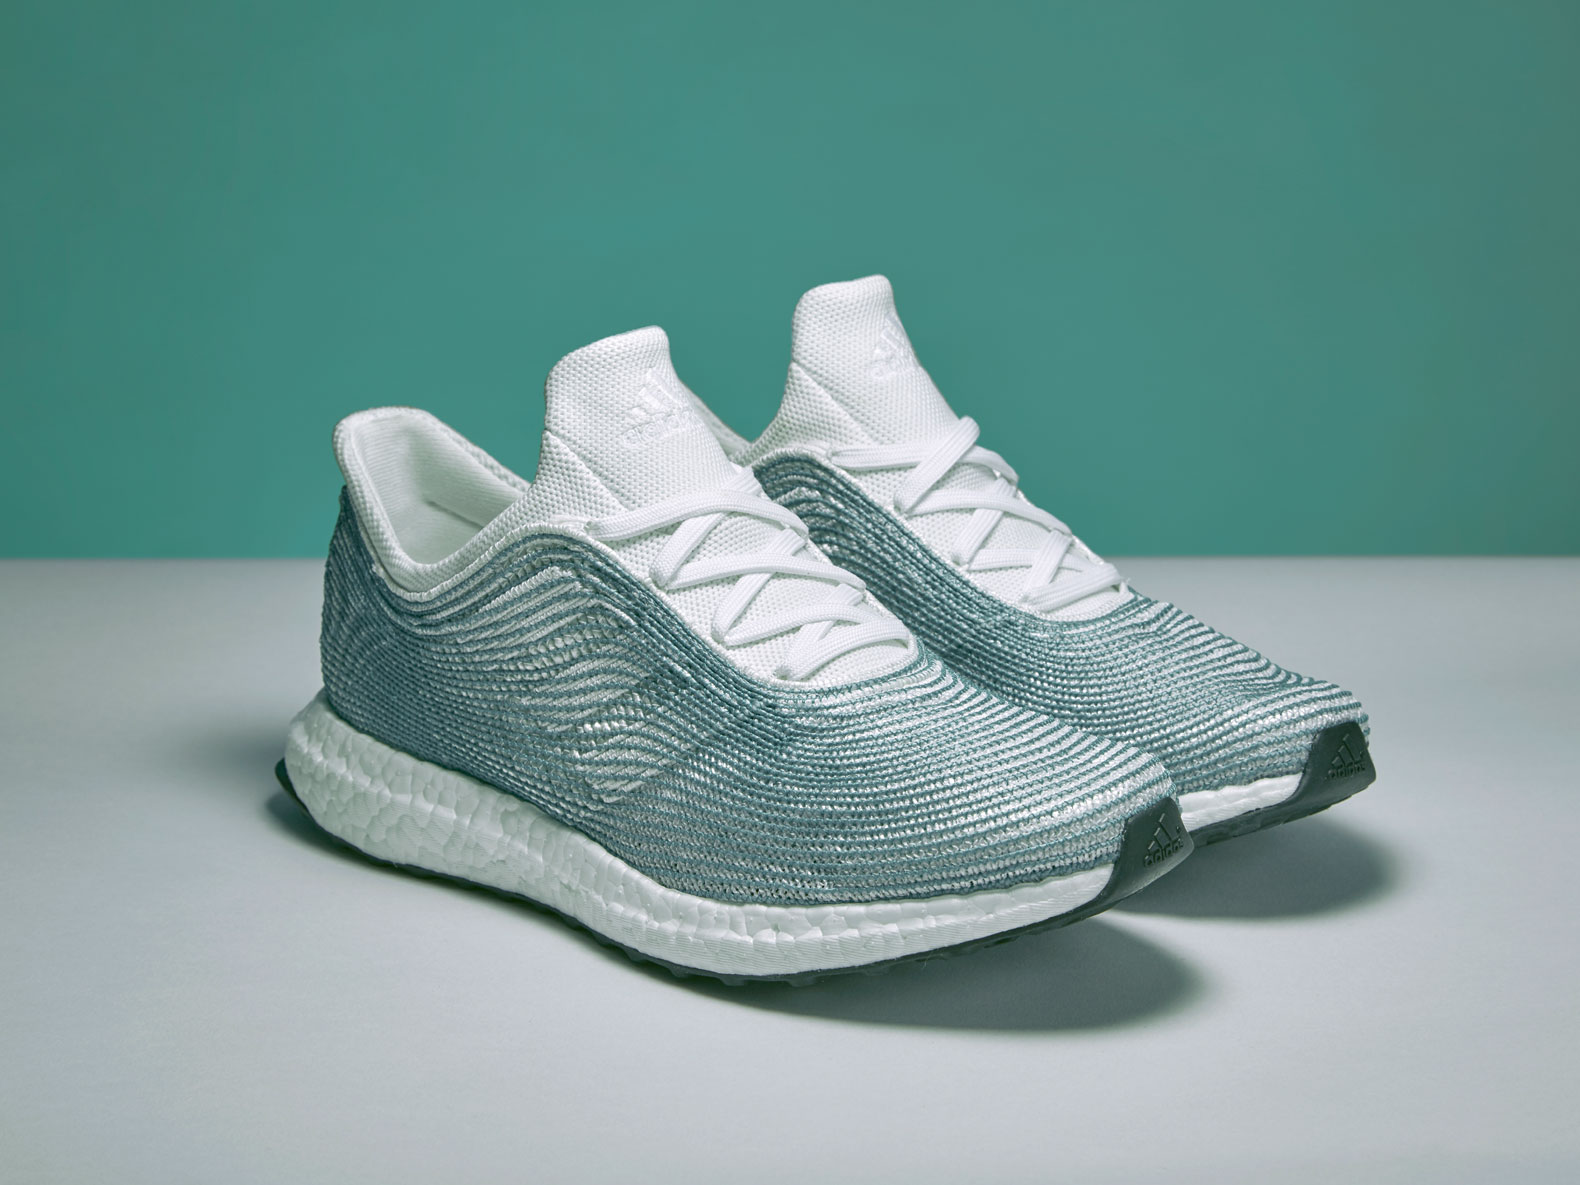 Adidas To Make 1 Million Shoes From